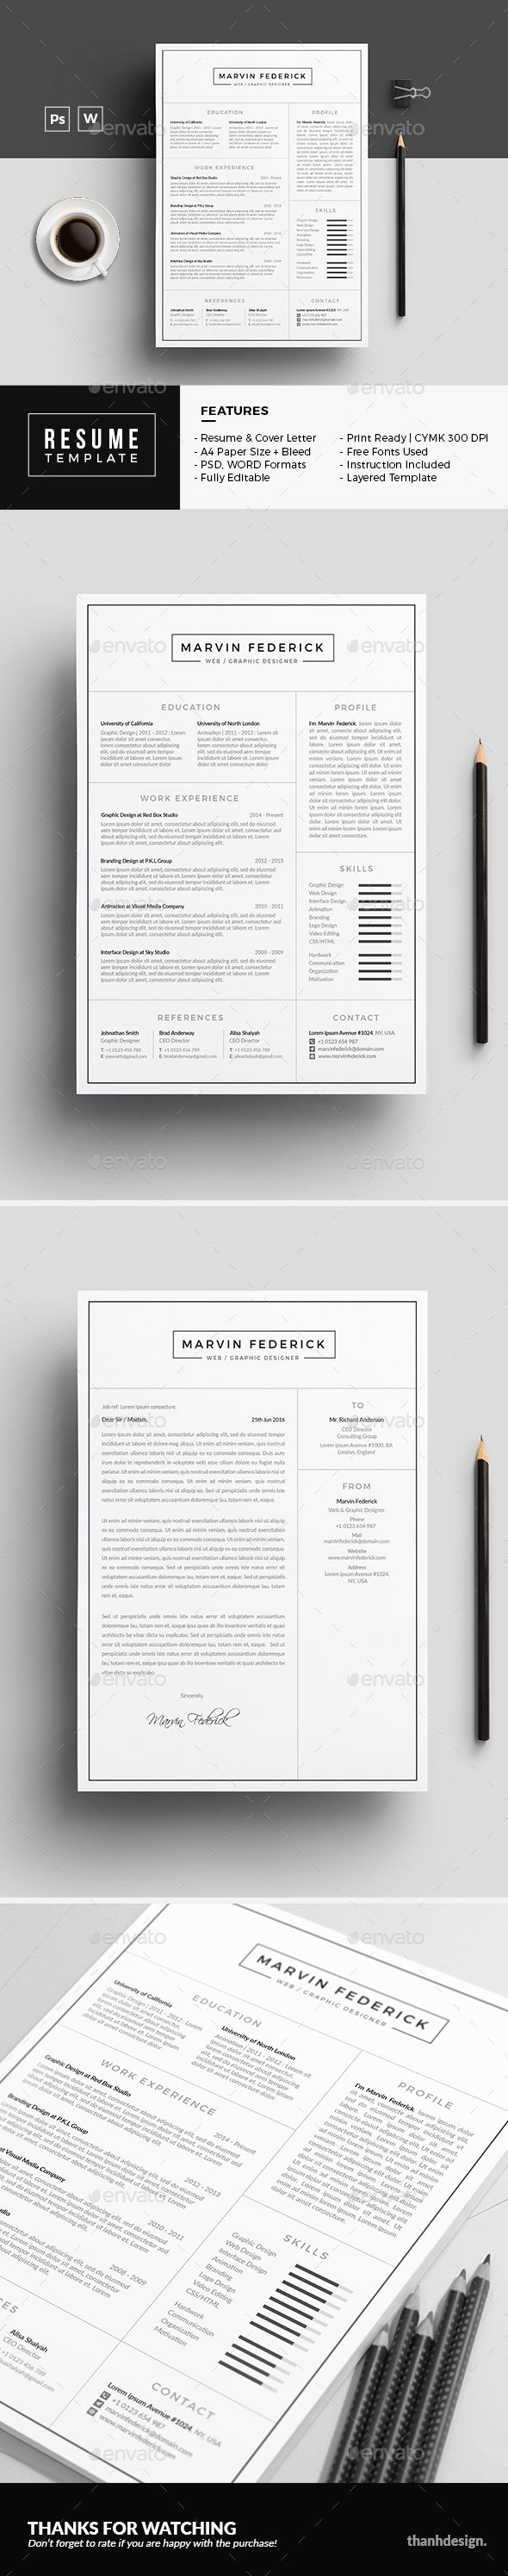 Resume  — PSD Template #resume minimalist #resume clean • Download ➝ https://graphicriver.net/item/resume/19030928?ref=pxcr